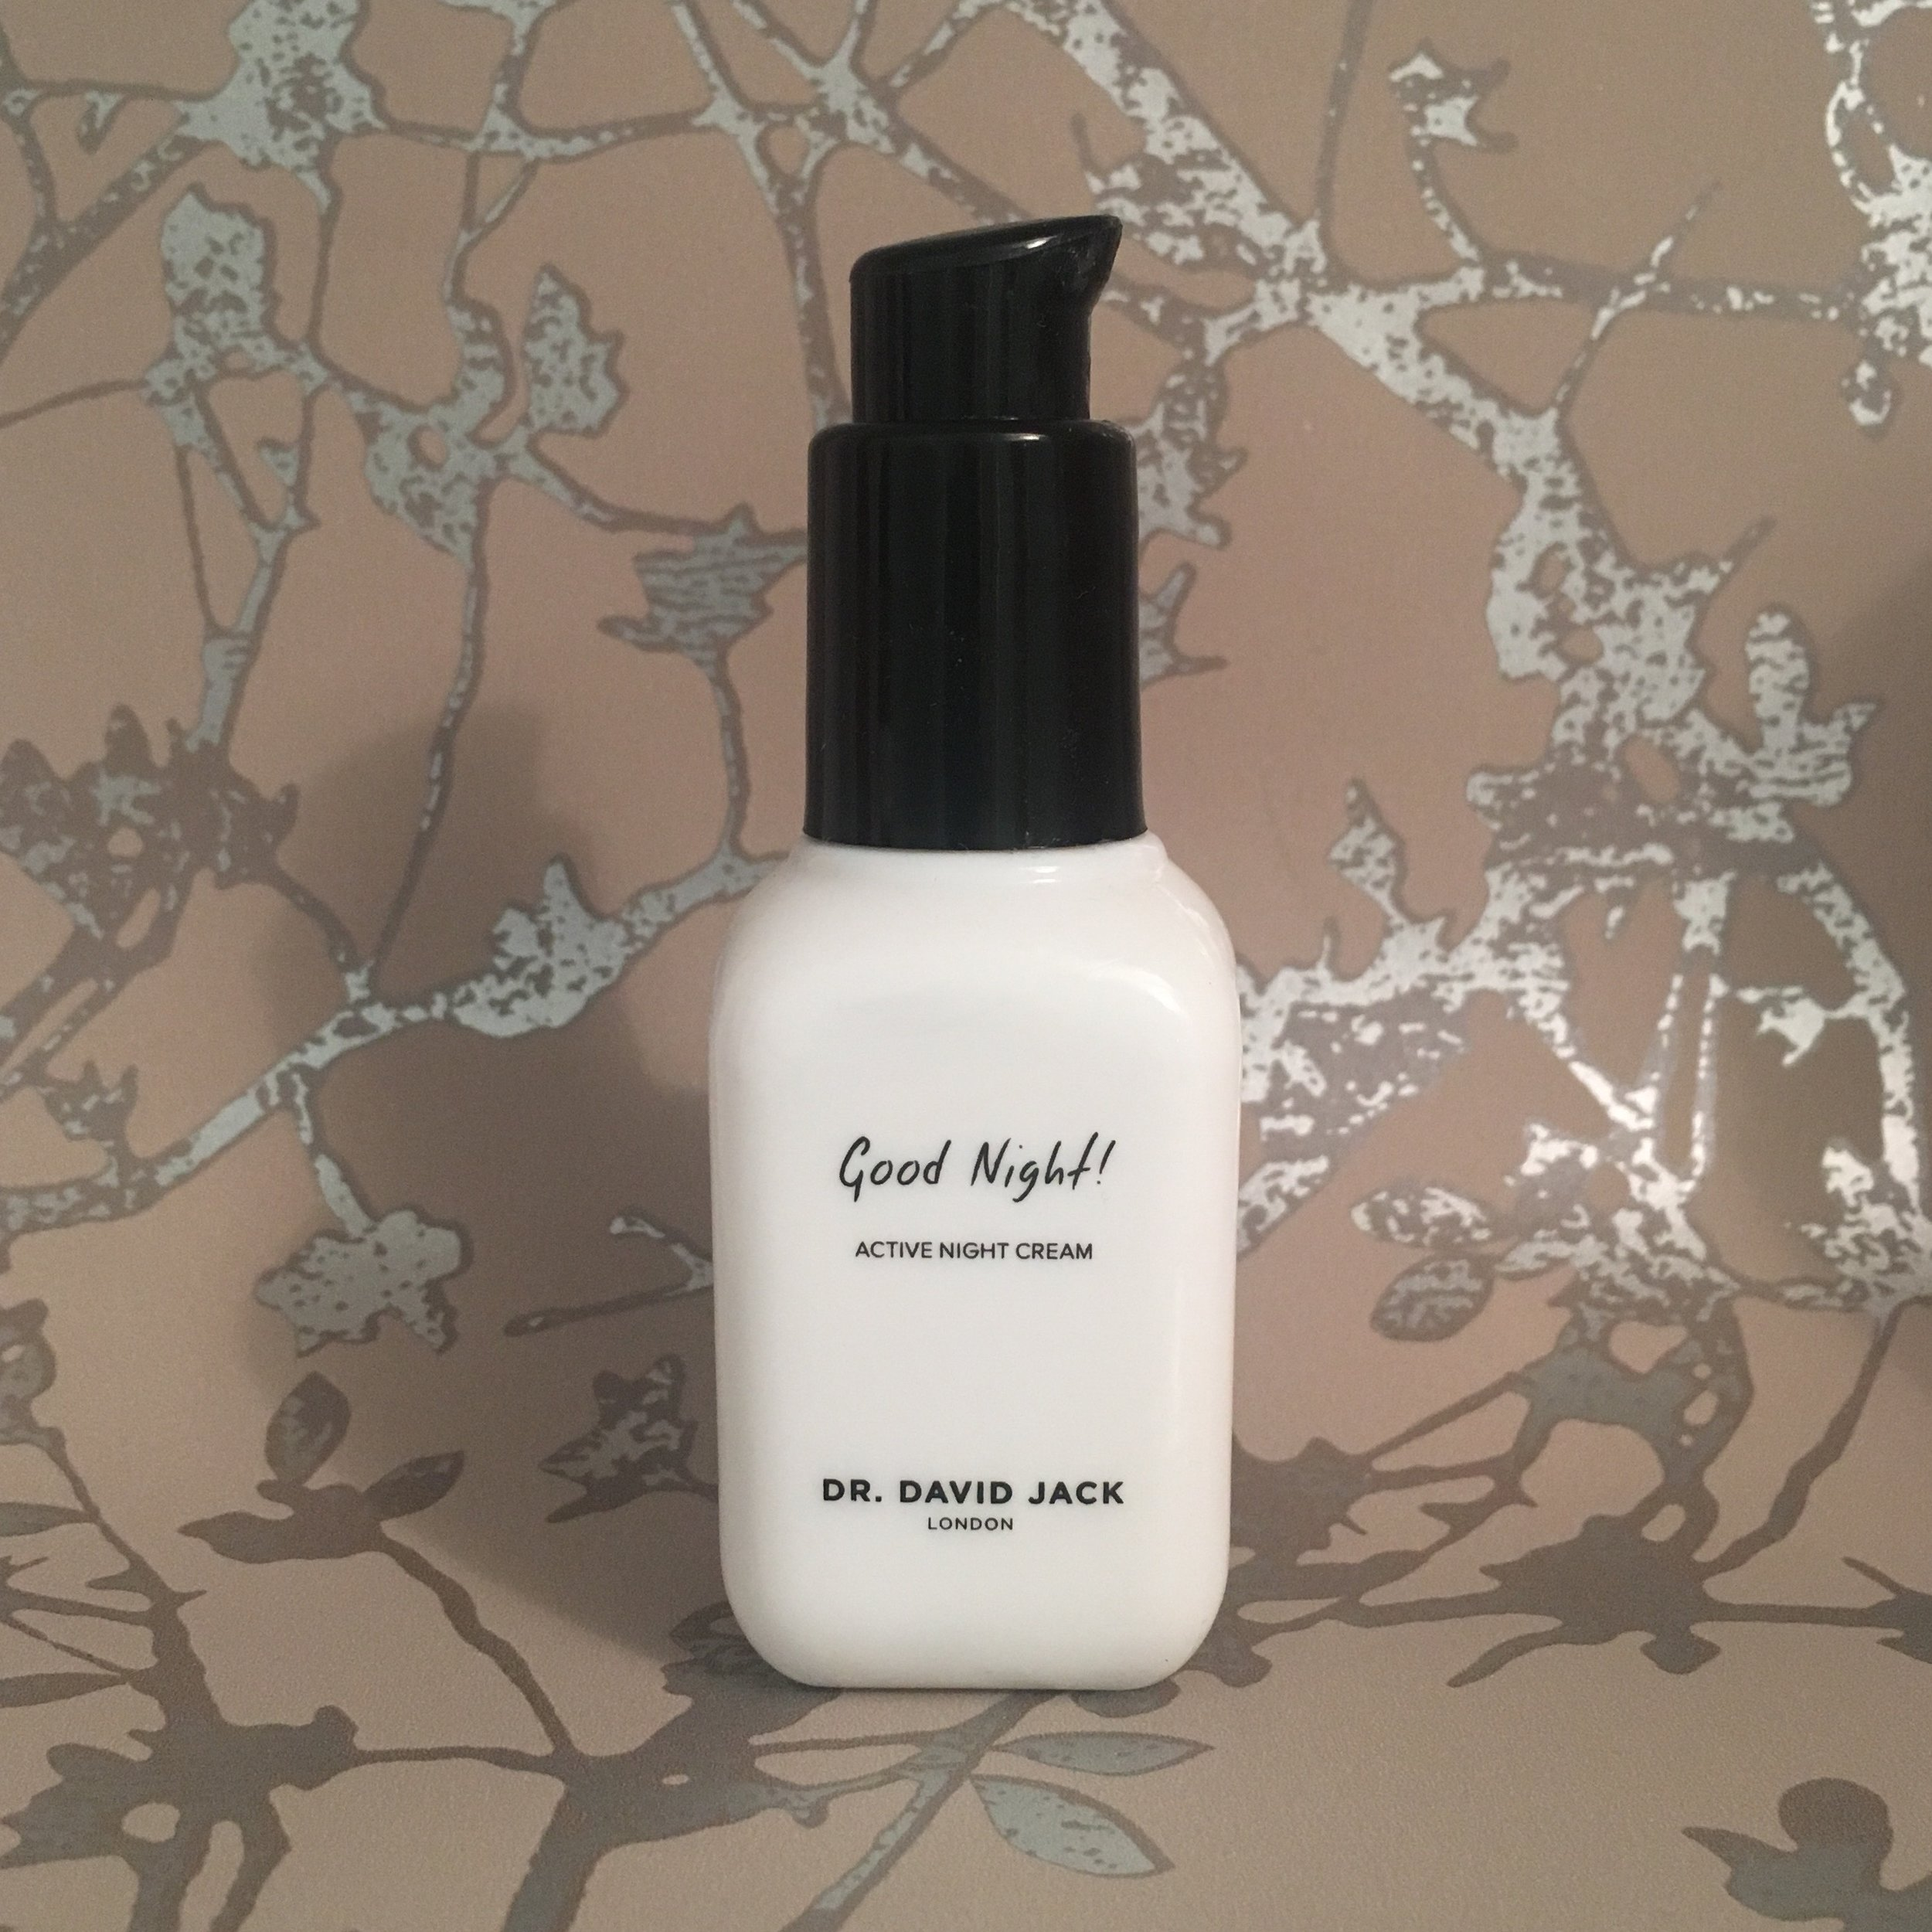 Overnight skin reviver from Integrative Beauty